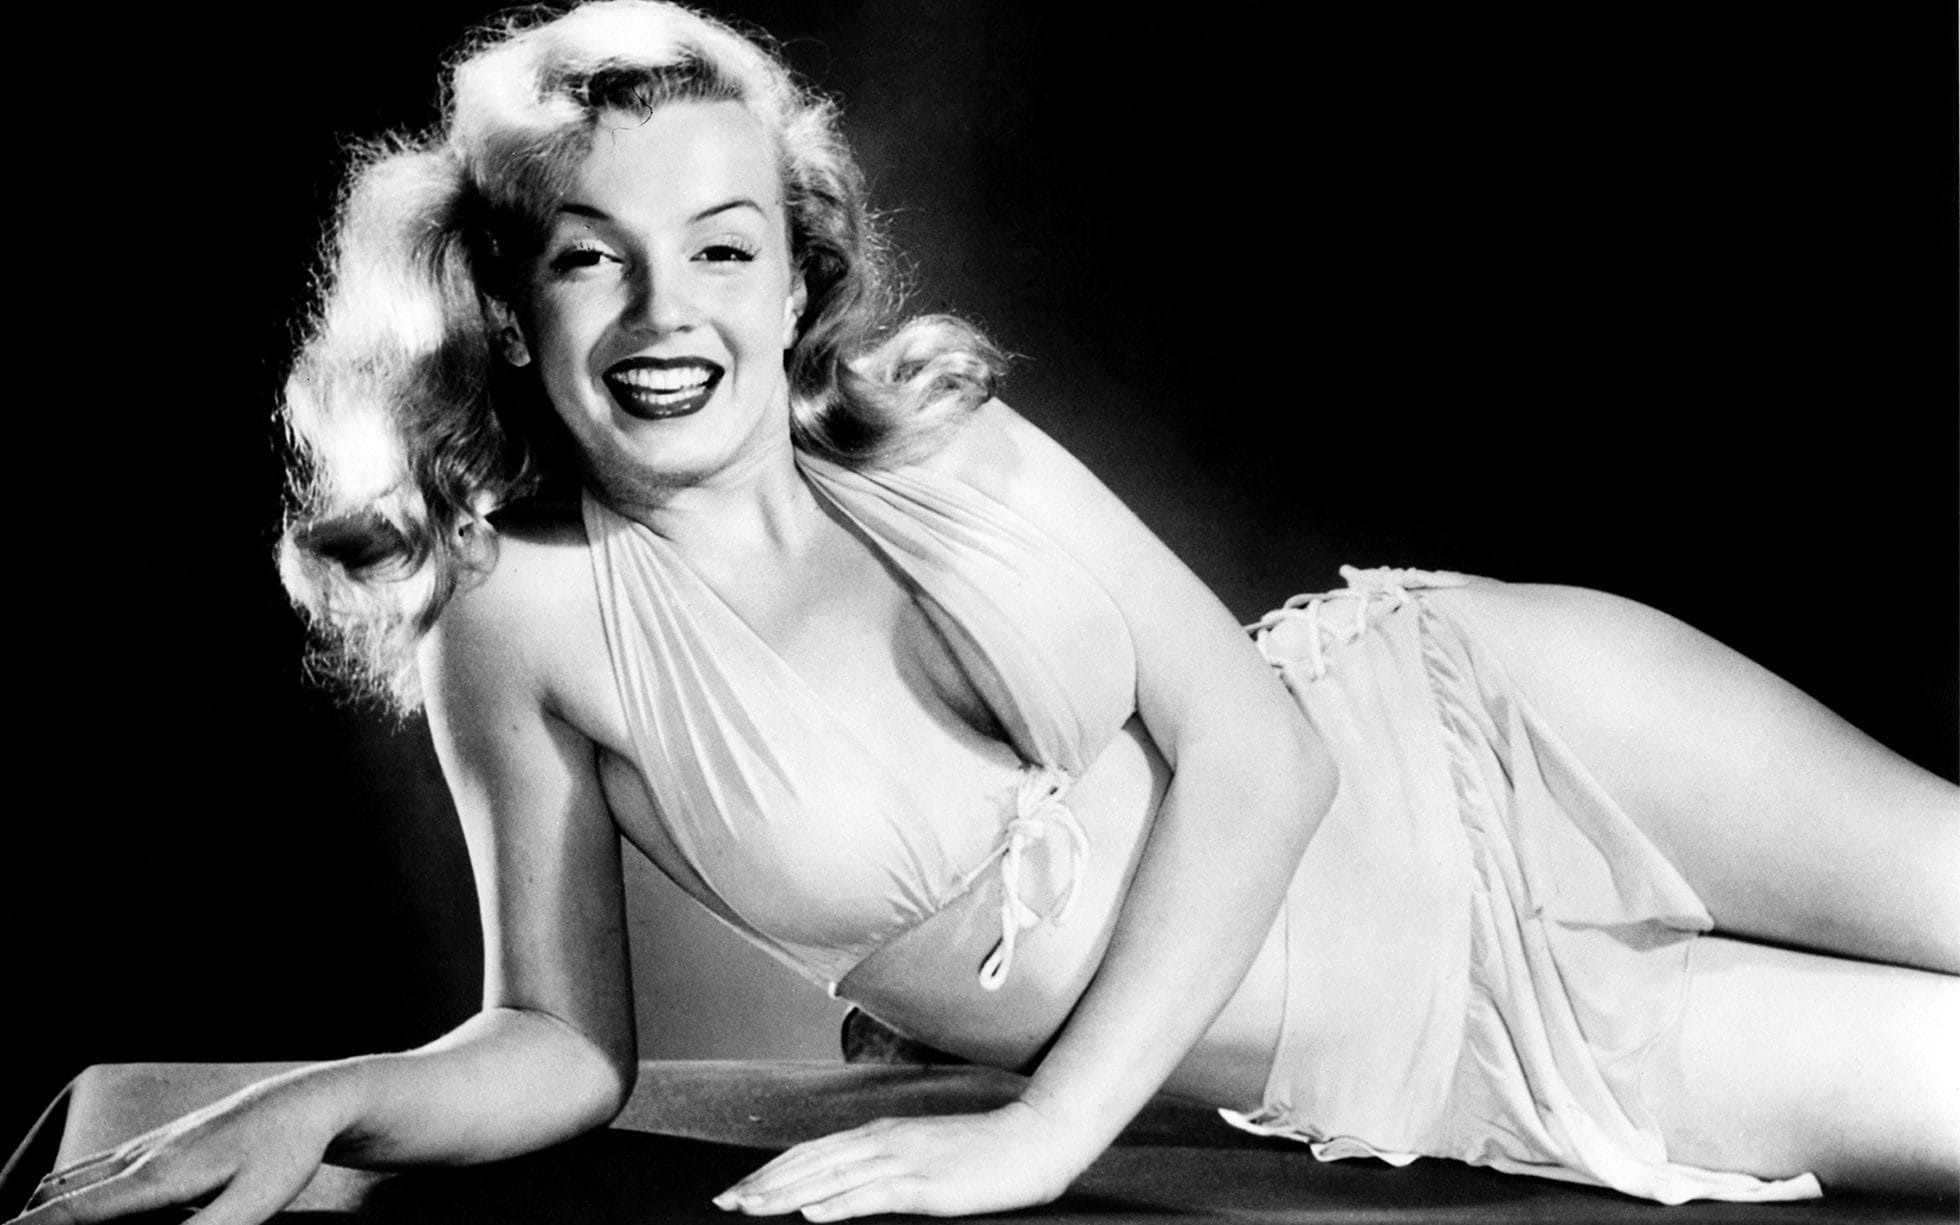 https://www.telegraph.co.uk/films/2016/06/01/50-things-you-didnt-know-about-marilyn-monroe/